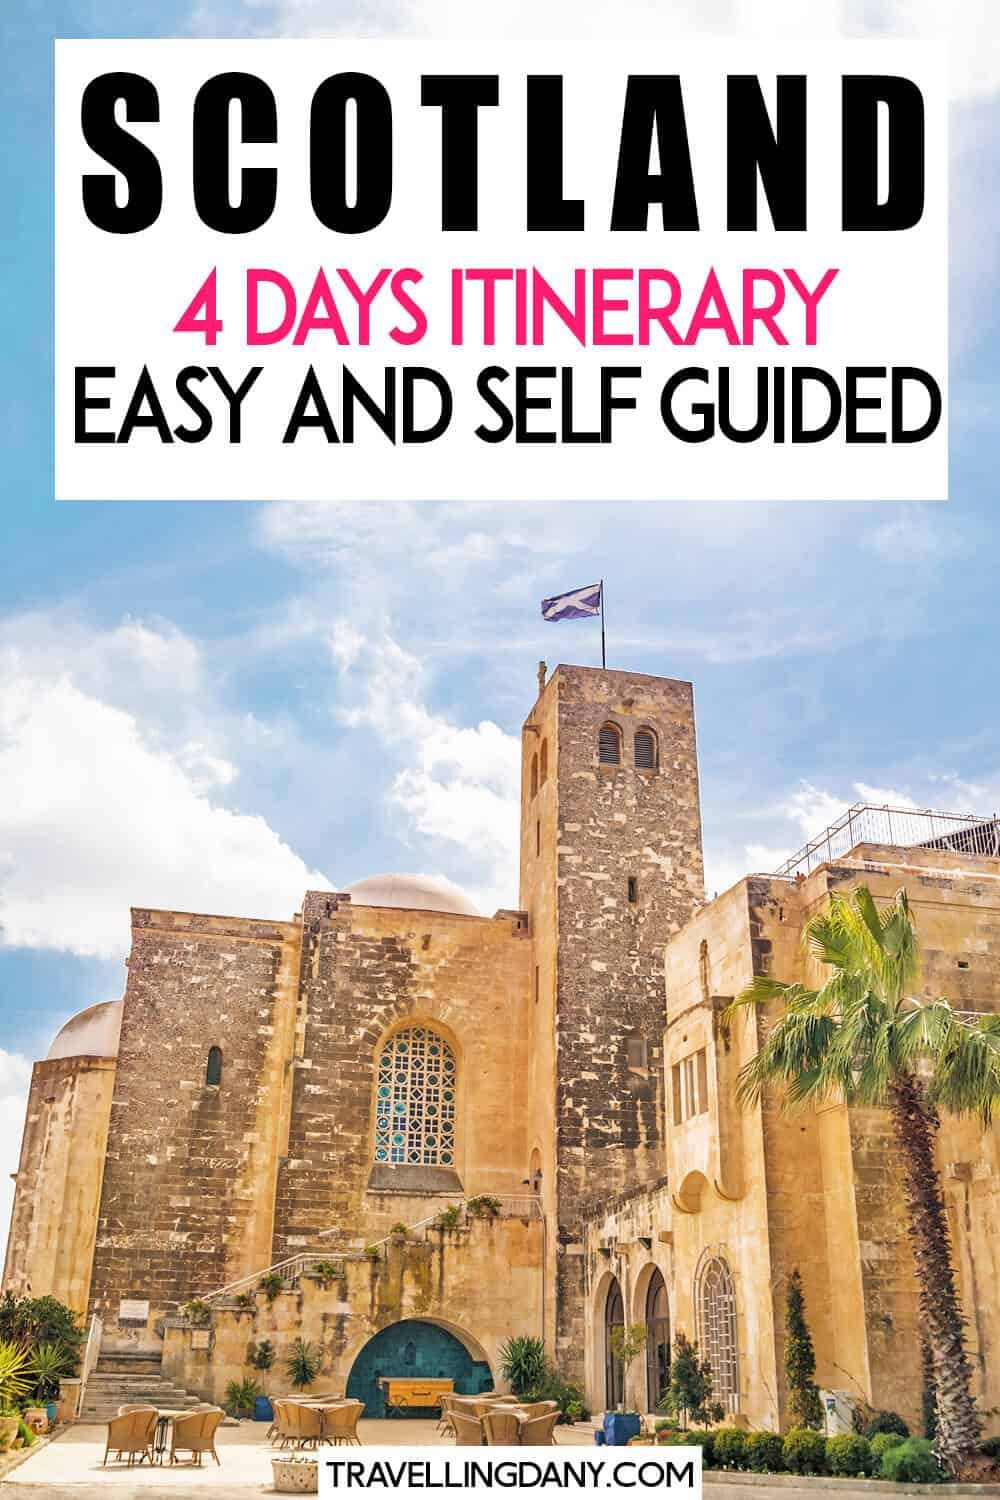 Are you planning a short Scotland road trip? This itinerary will help you to plan 4 days in Scotland, with info on what to see in Edinburgh and how to explore if you don't want to rent a car! | #scotland #scotlandtravel